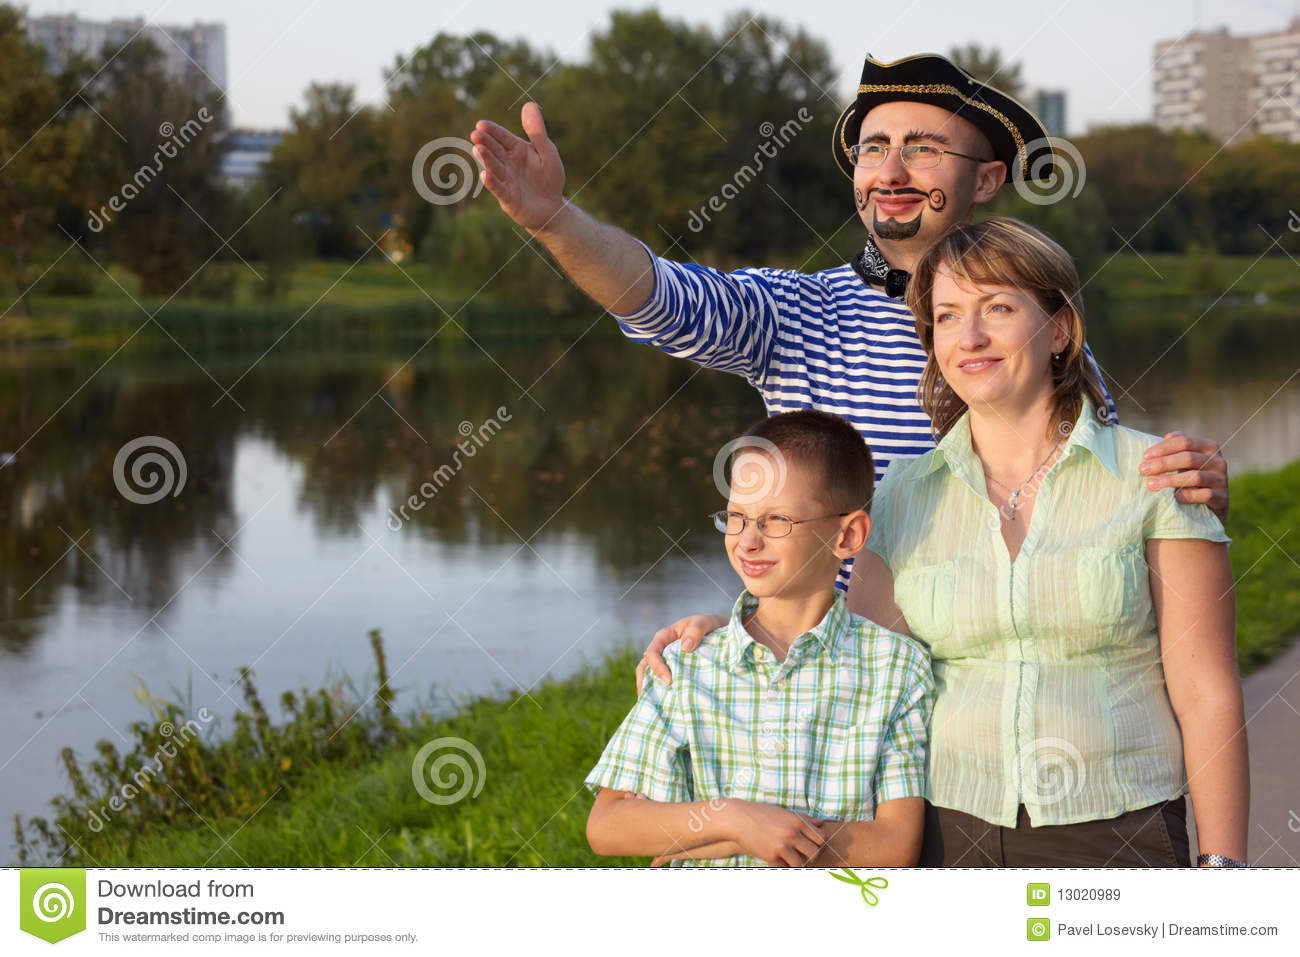 Family in park near pond: man in pirat suit